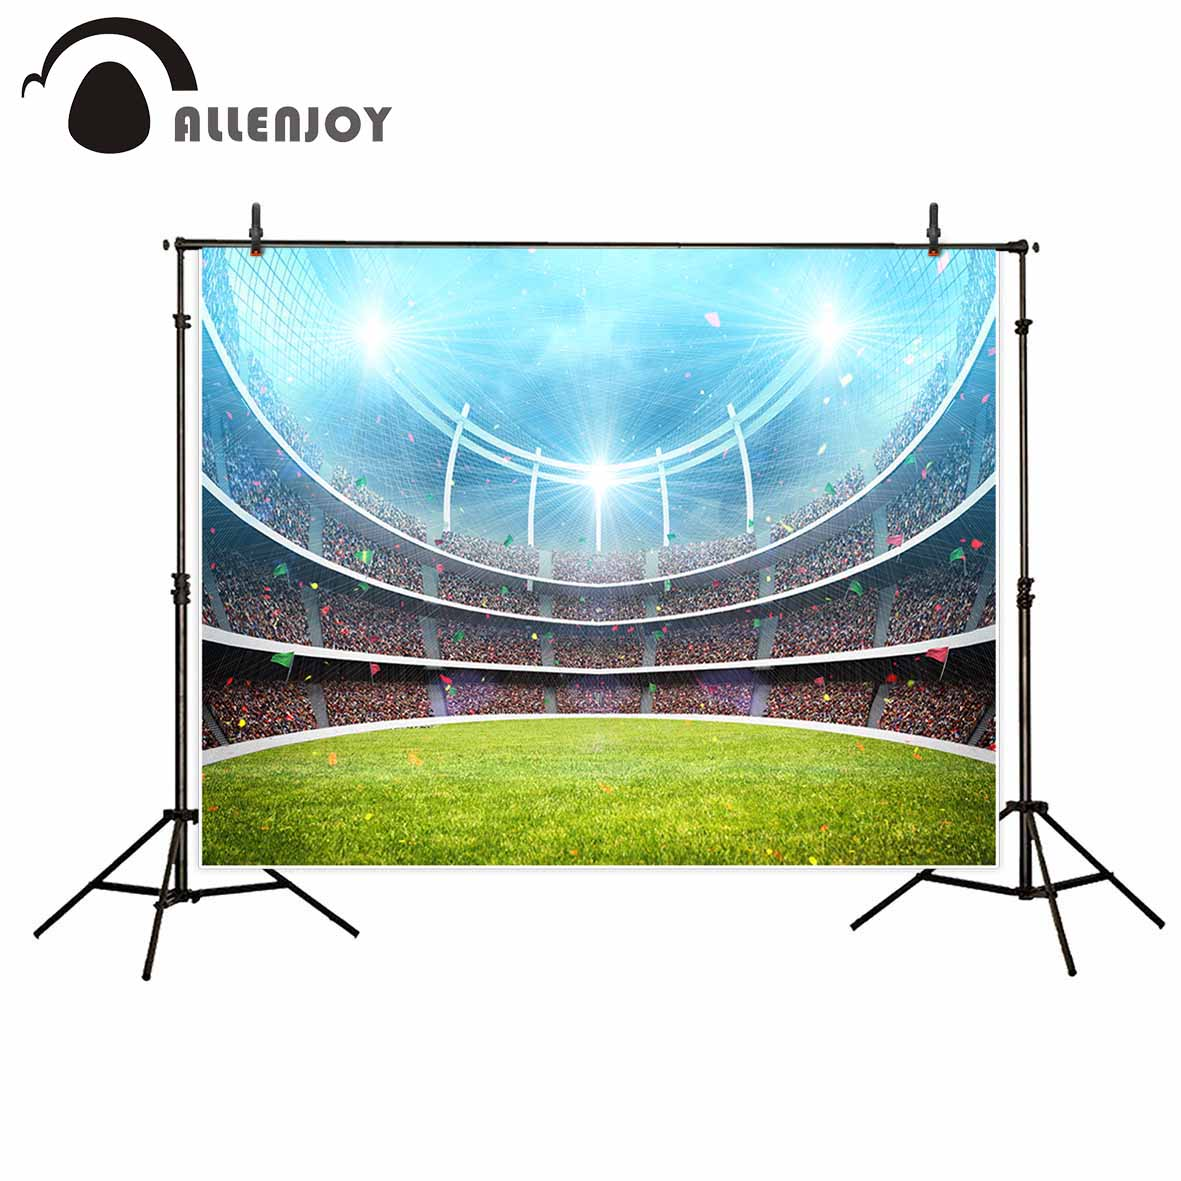 Allenjoy photo background Soccer Football field crowd ribbons lawn background for photo photo booth new photographic backdrops